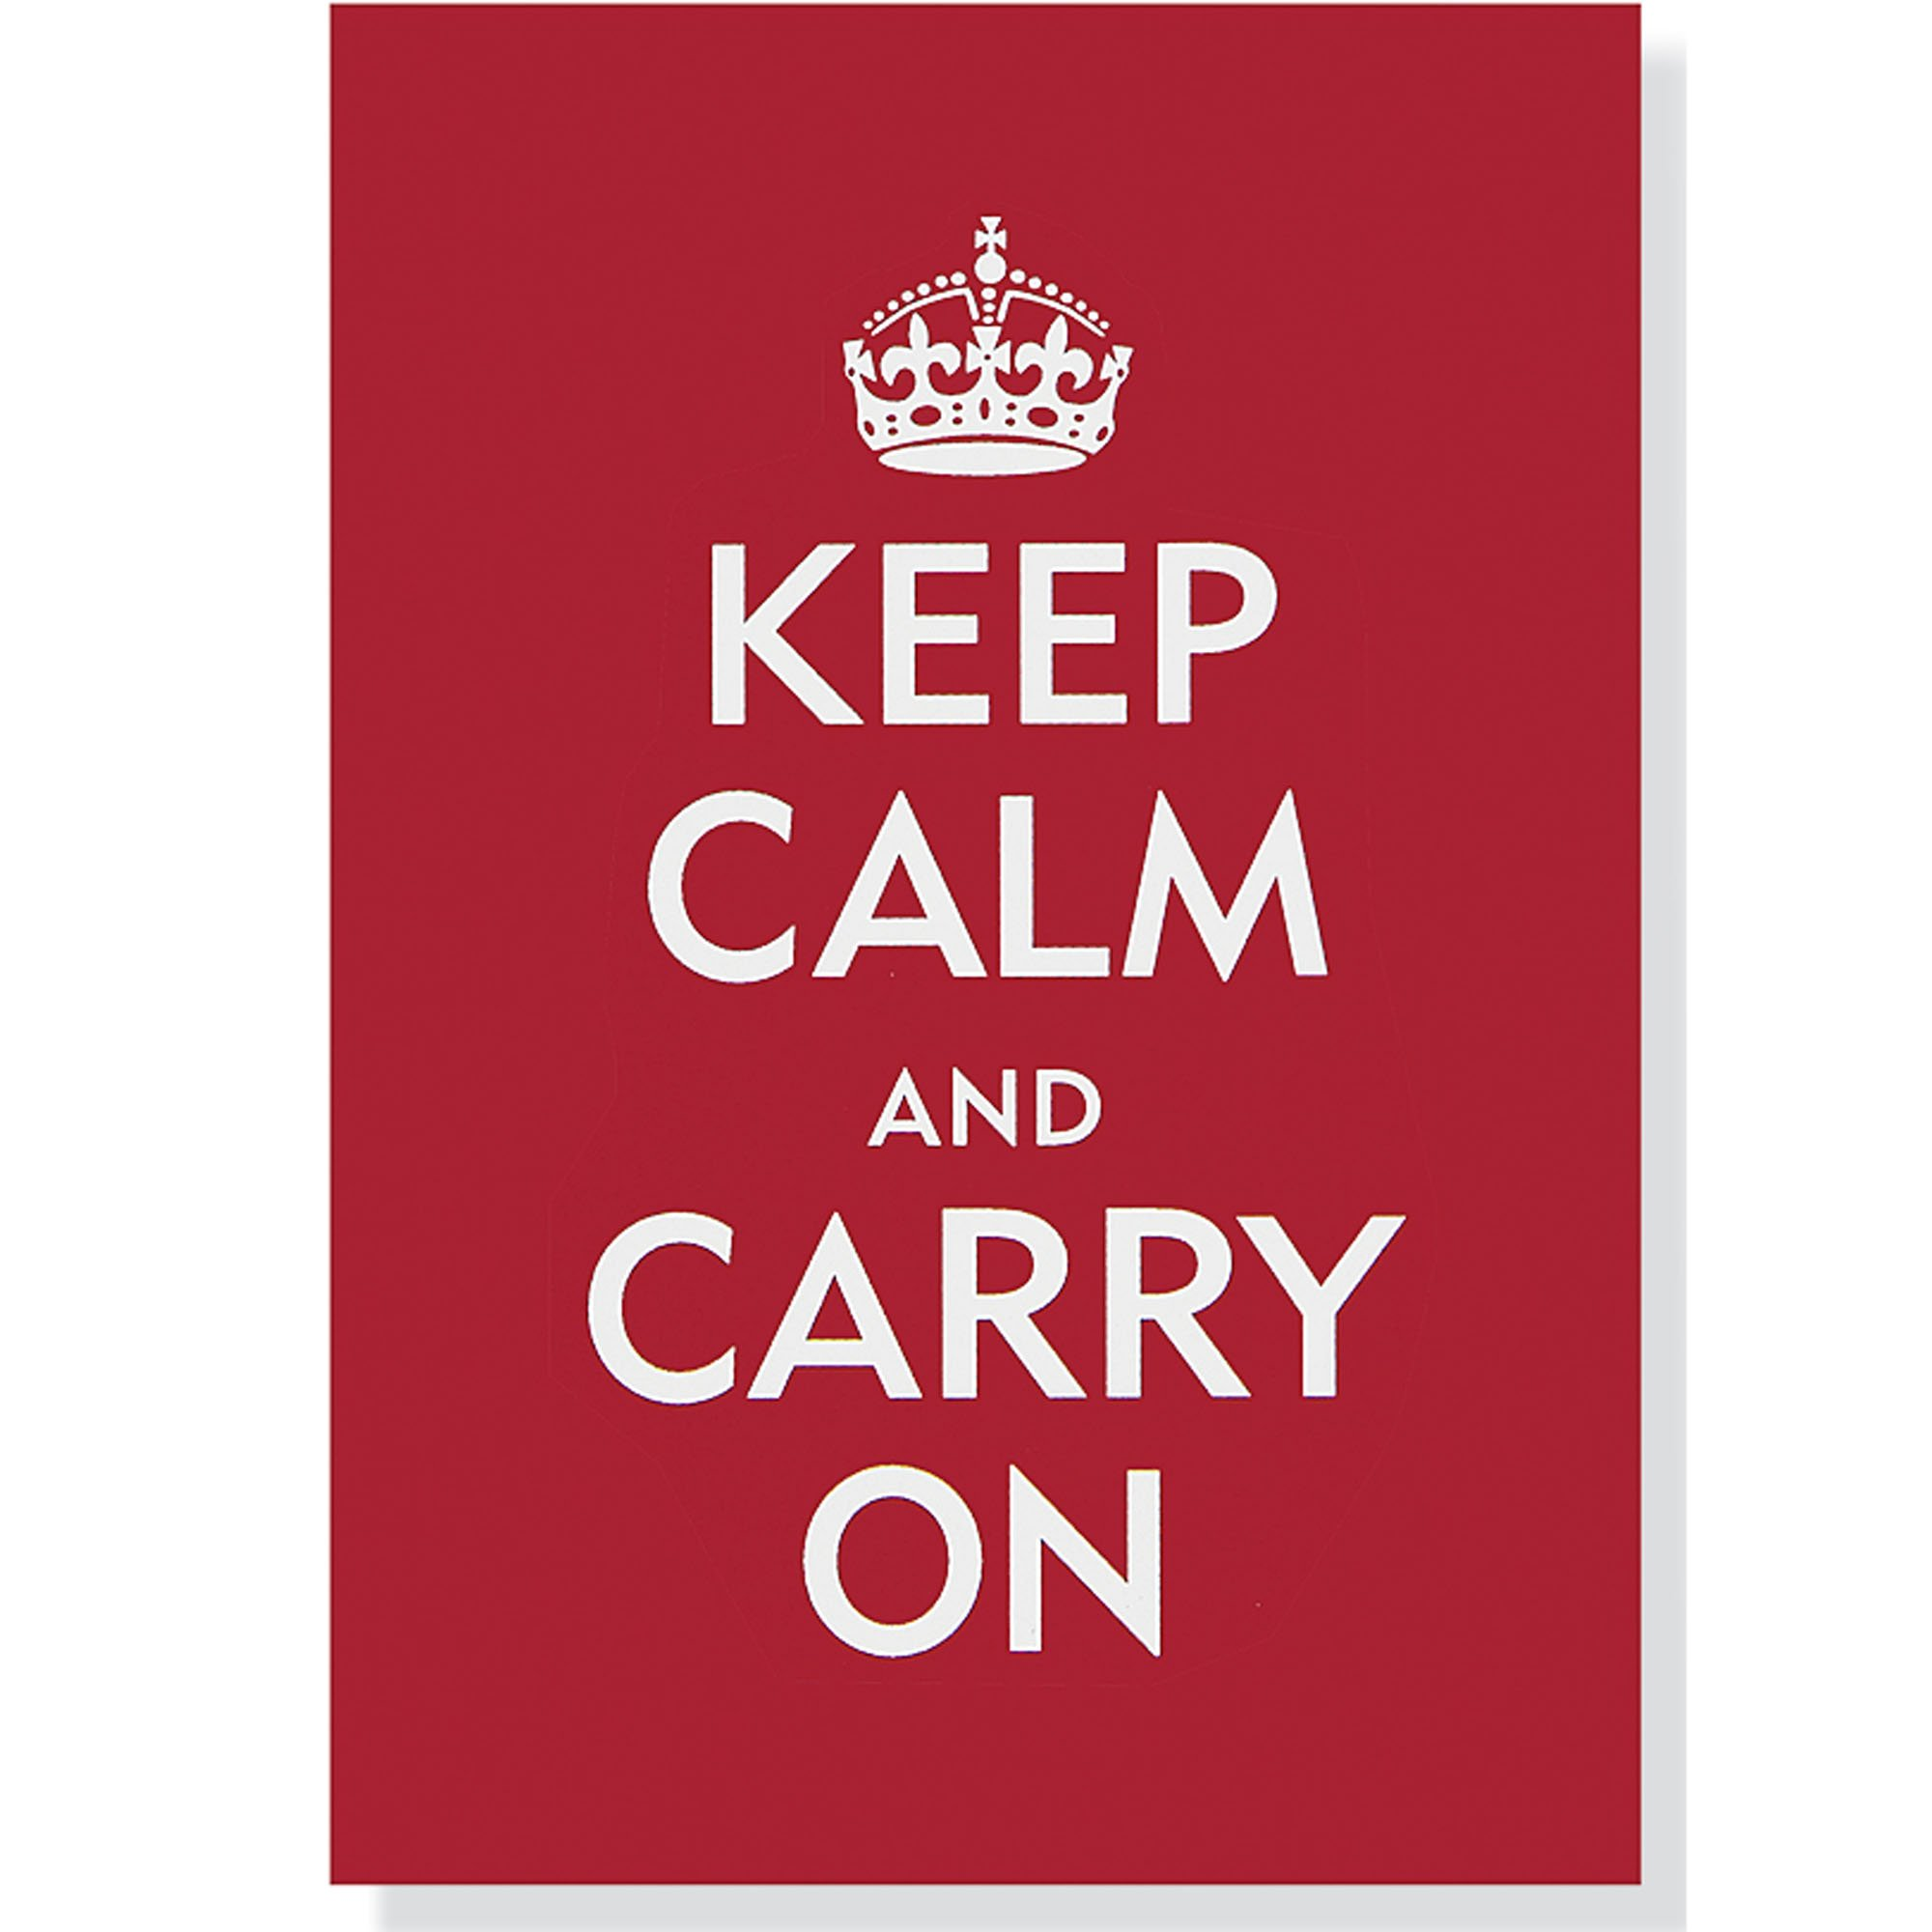 KEEP CALM AND CARRY ON 1939 GLOSSY POSTER PICTURE PHOTO PRINT BRITAIN UK WWII